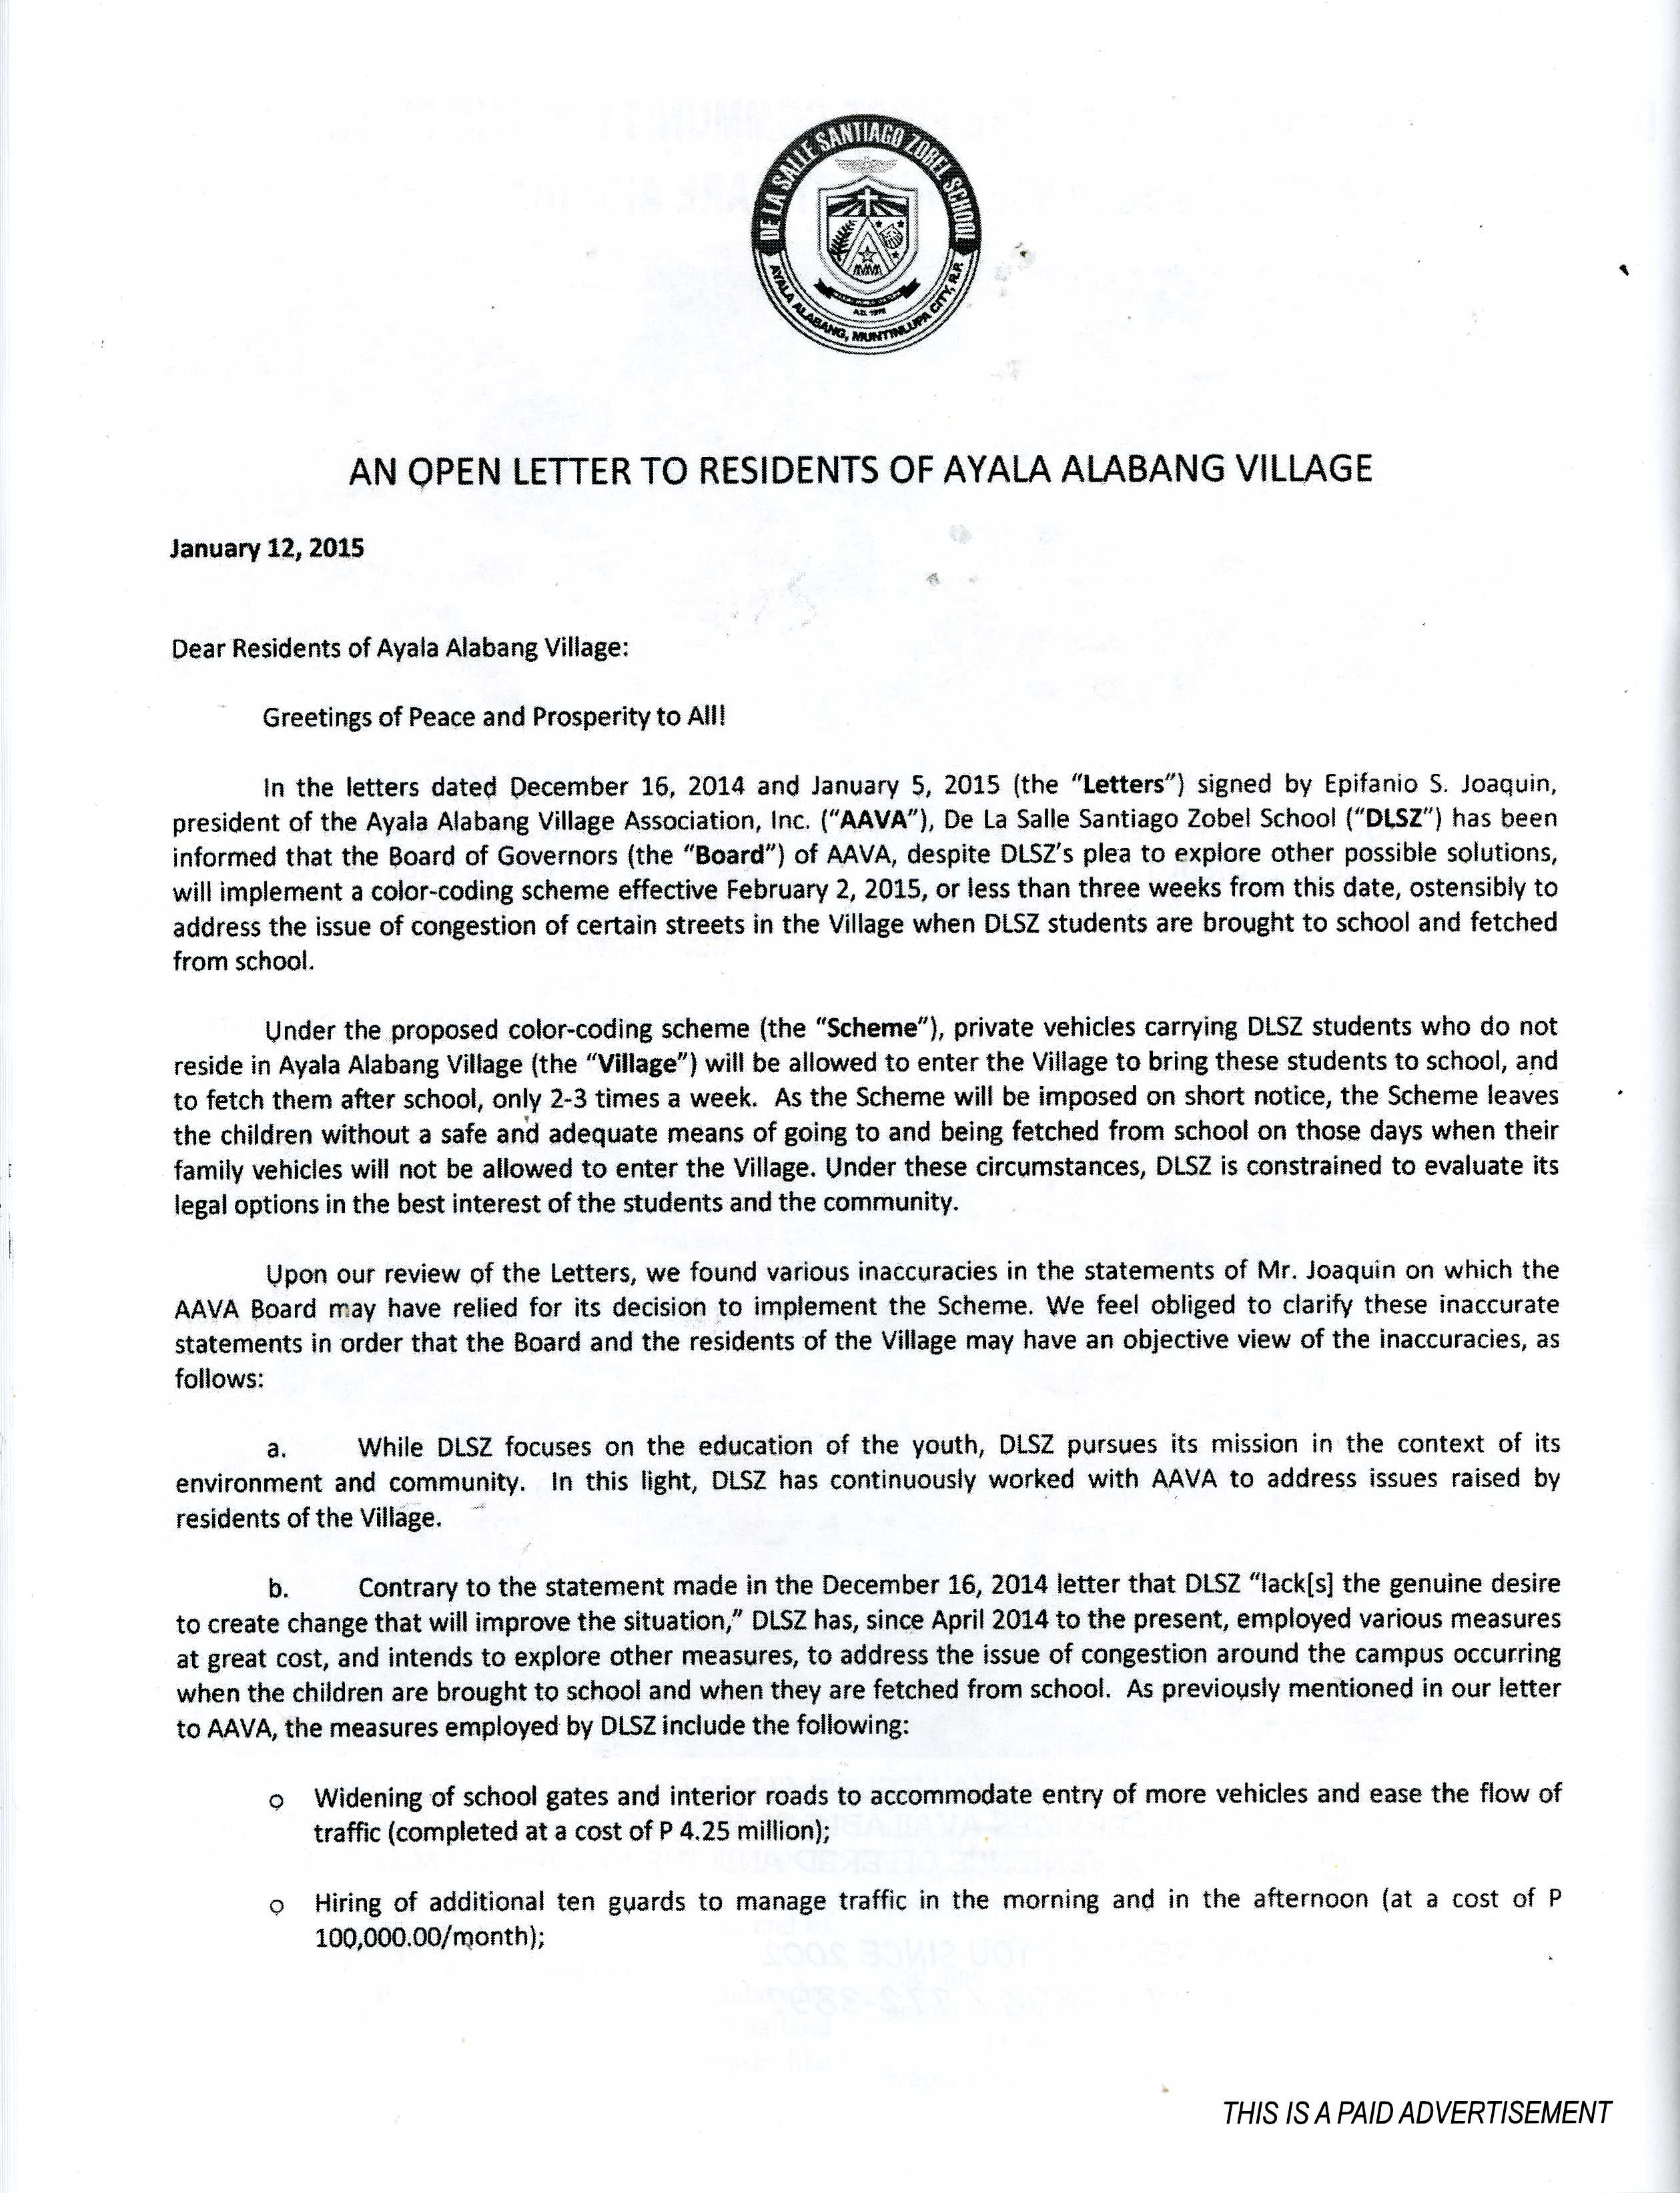 De la salle santiago zobel br bernie concerned aav residents a day after the release concerned residents of aav also wrote an open letter to their fellow aav residents dated january 13 2015 regarding their concern kristyandbryce Gallery